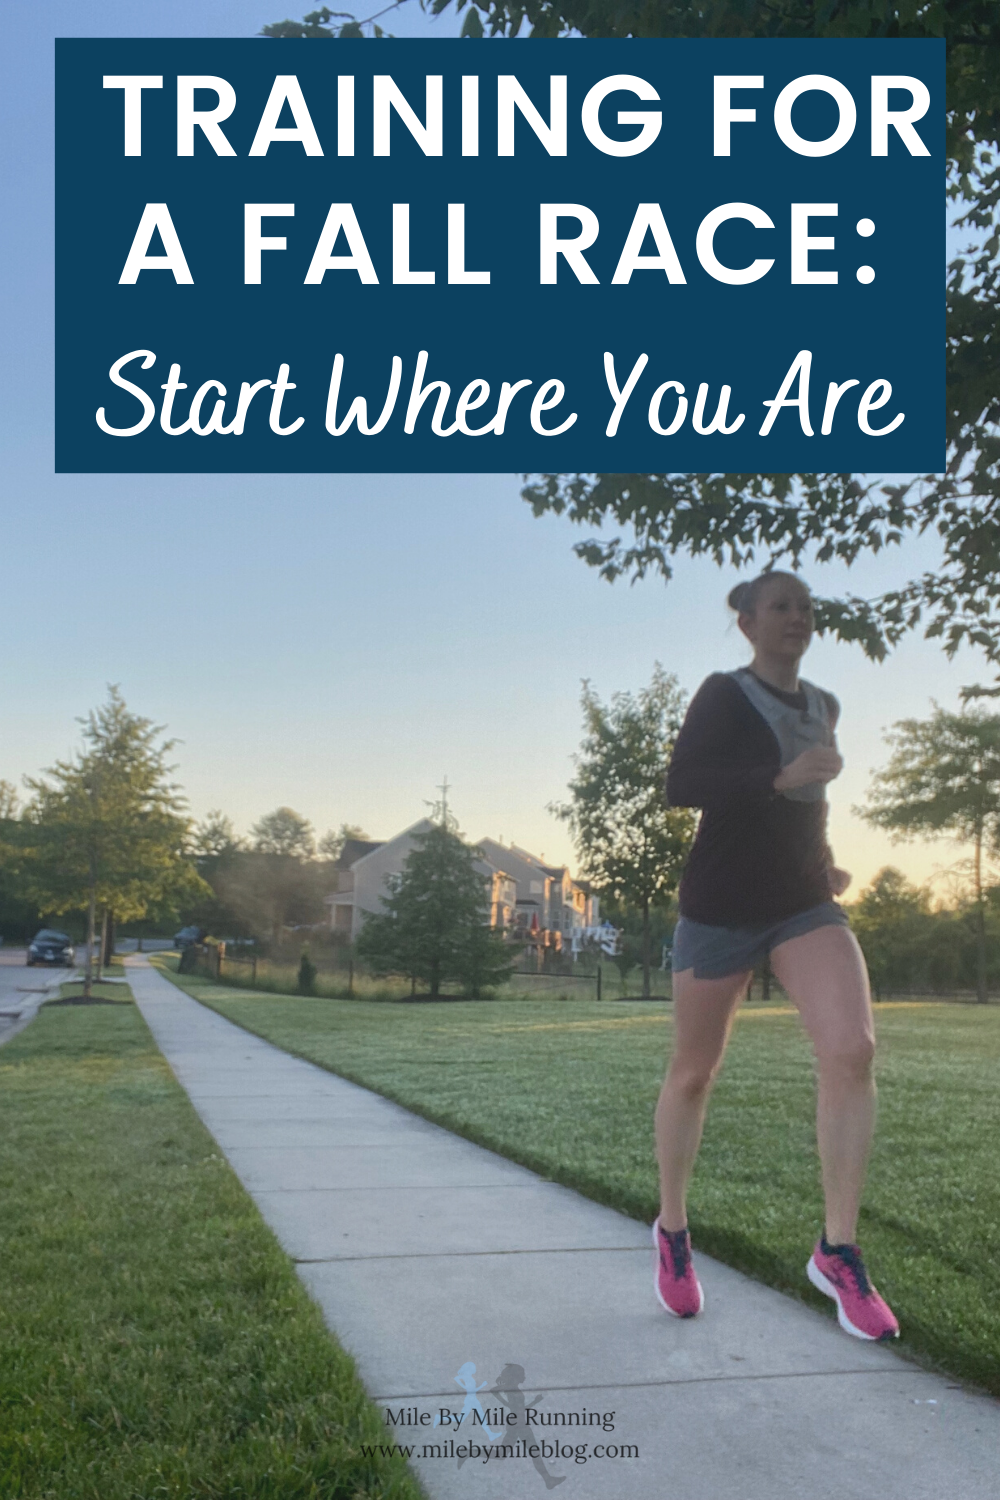 """I'm back after skipping last week's Weekly Run Down due to my blog being down! But everything is back up now so it's time to play catch up. Two weeks ago I started training for a fall race. I am hoping to do a marathon. but may consider doing a half if a full is too much. My motto as I've started training is """"start where you are"""". I will slowly build, add some speed, and see where it takes me."""